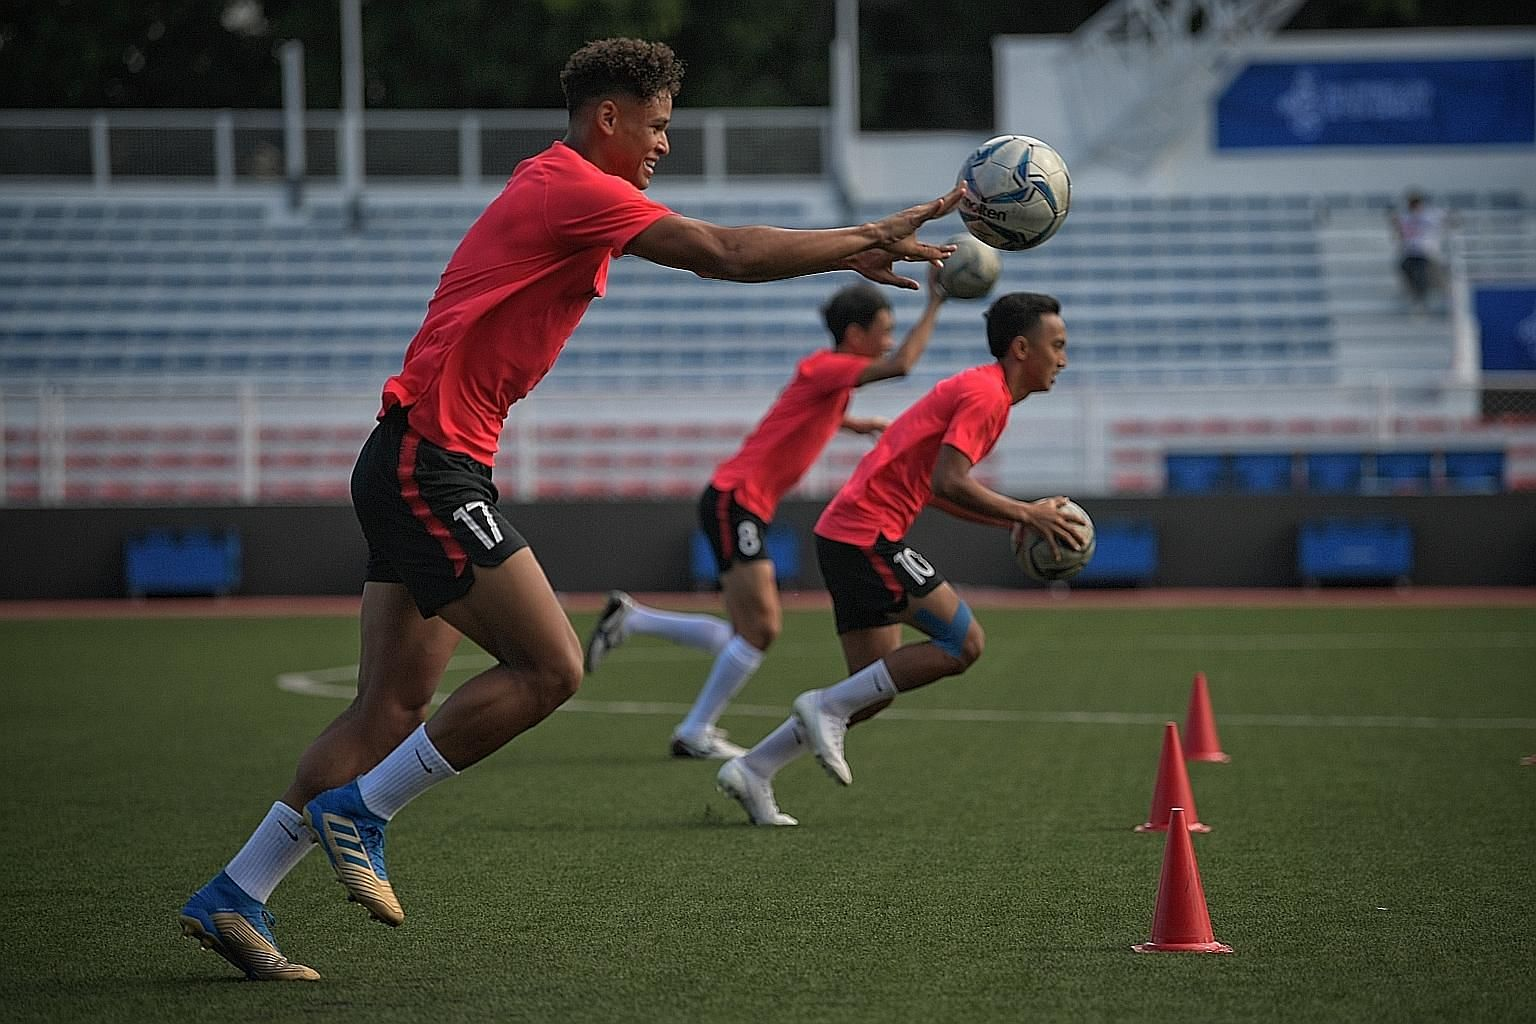 Irfan Fandi (No. 17) and Faris Ramli (No. 10) training with the Under-22 footballers at the Rizal Memorial Stadium ahead of their opening SEA Games group match against Laos tonight. ST PHOTO: MARK CHEONG